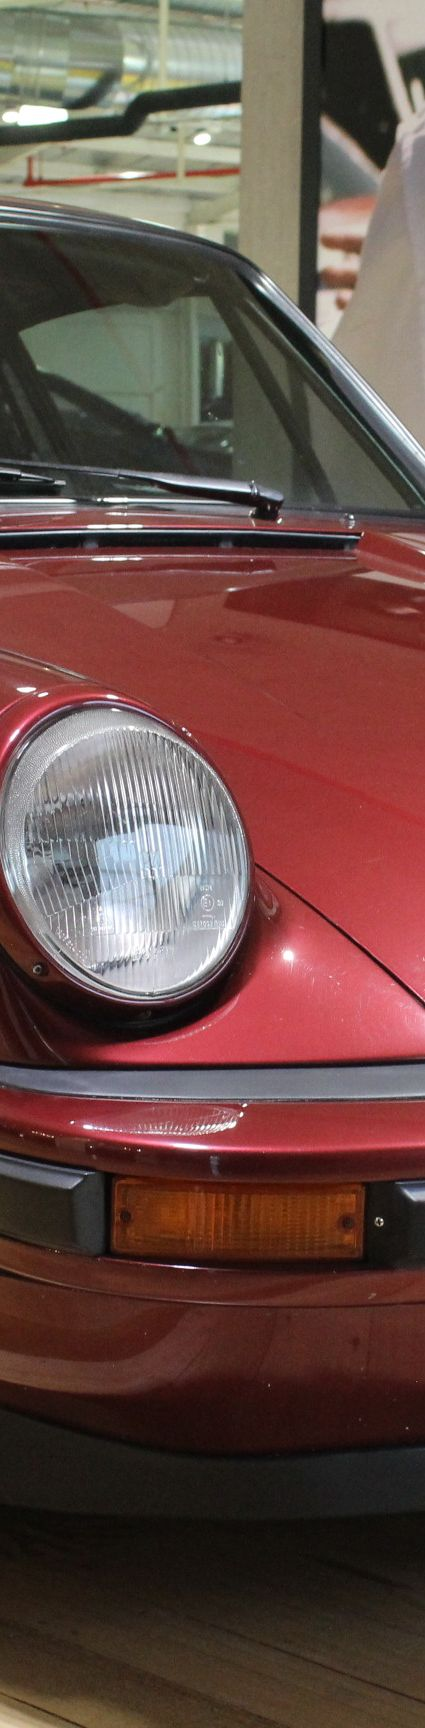 "1974 Porsche 911 ""G"" Carrera 2.7 - for sale in Australia"